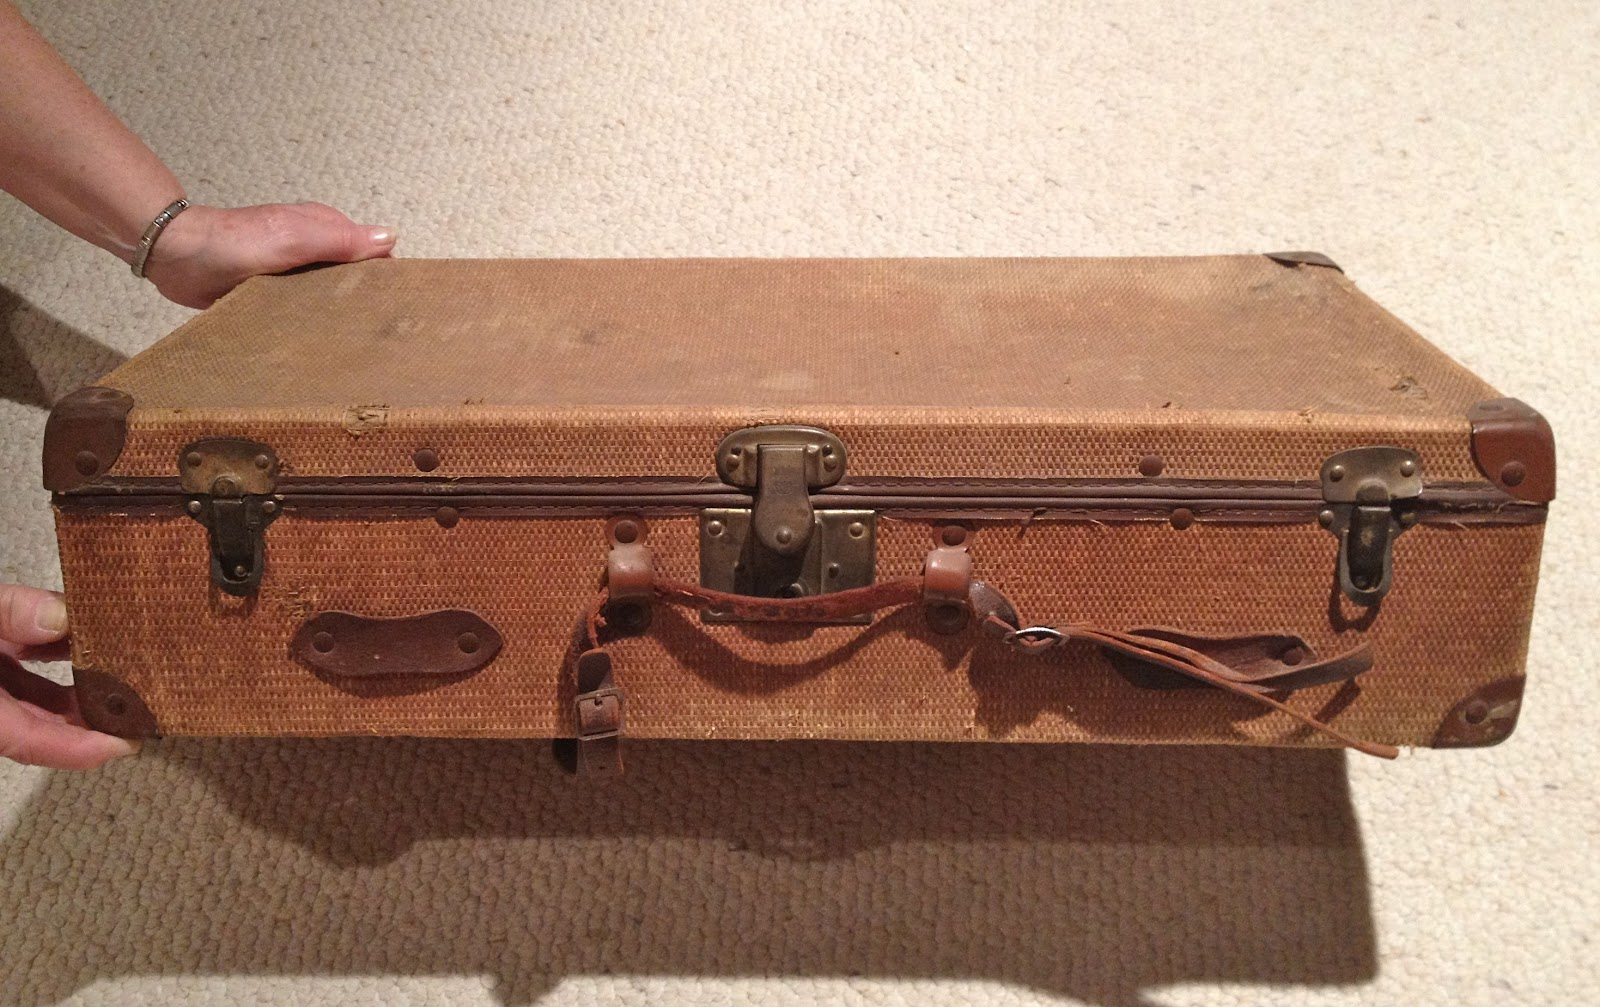 Upcycled Home Décor: Giving New Life to Vintage Suitcases | Driven ...